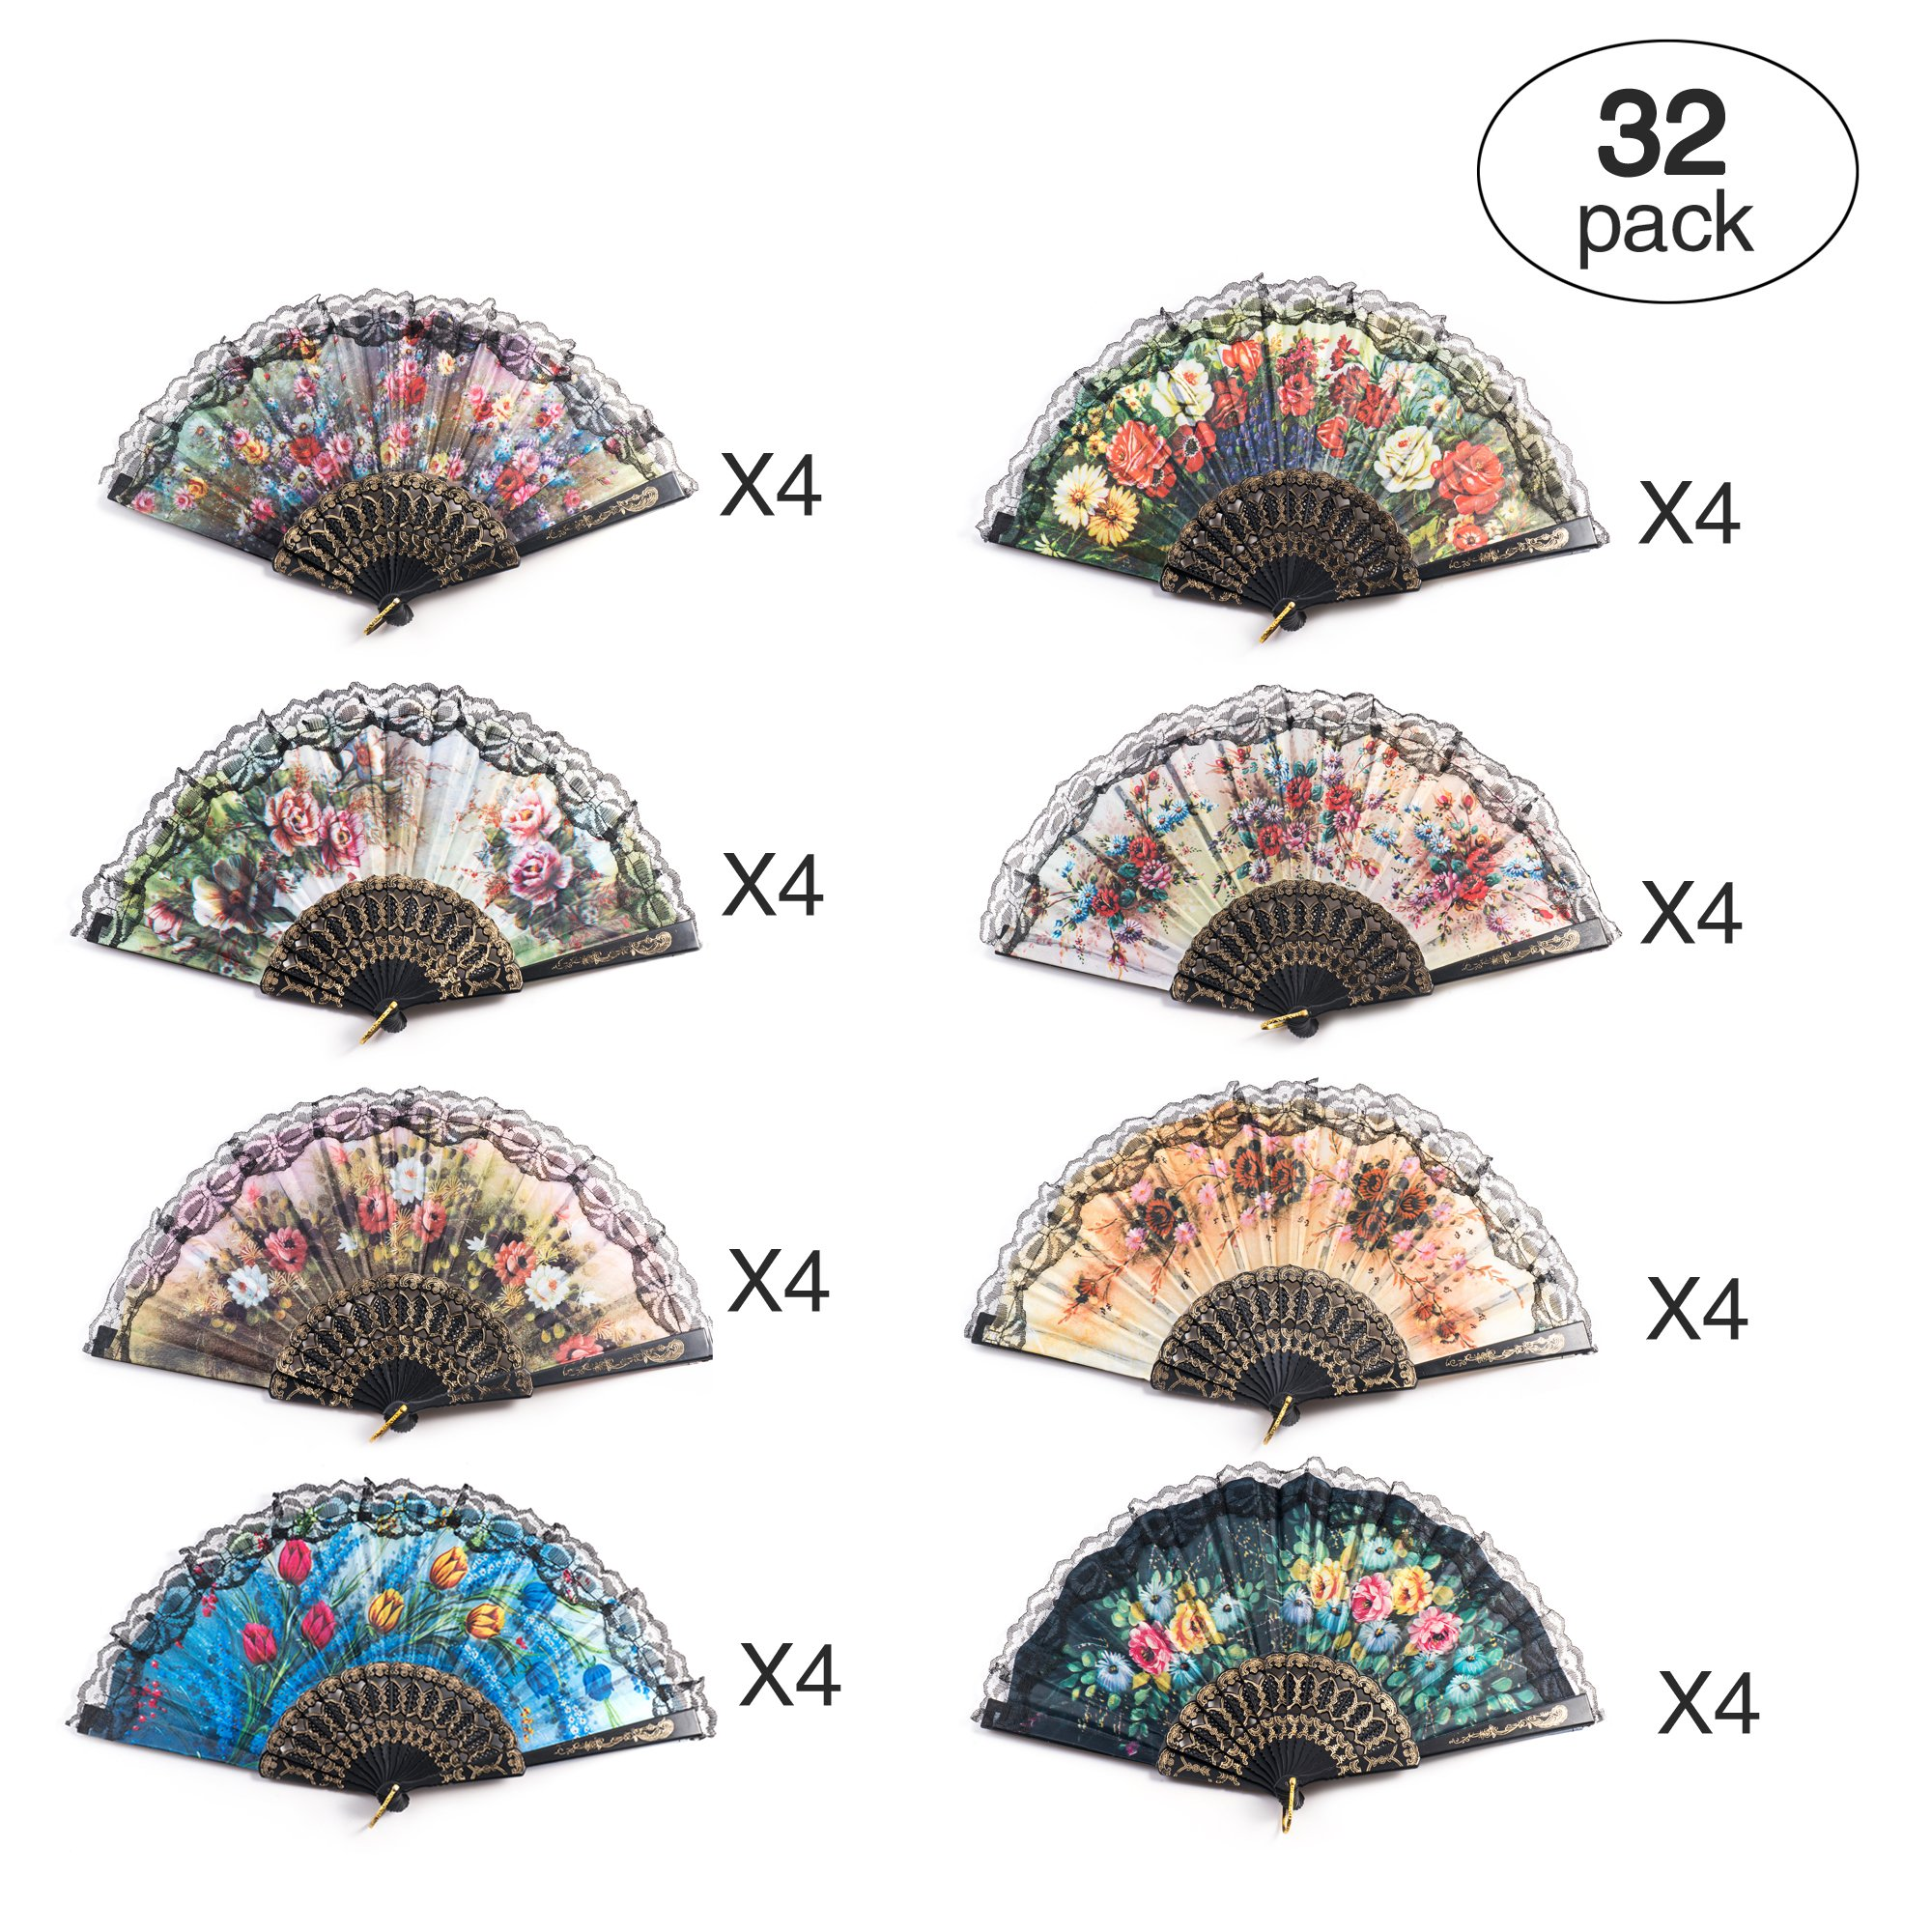 32 Pack Spanish Floral Folding Hand Fan Women Vintage Retro Pattern Fabric Fans (8 different patterns) by Huihuiyang